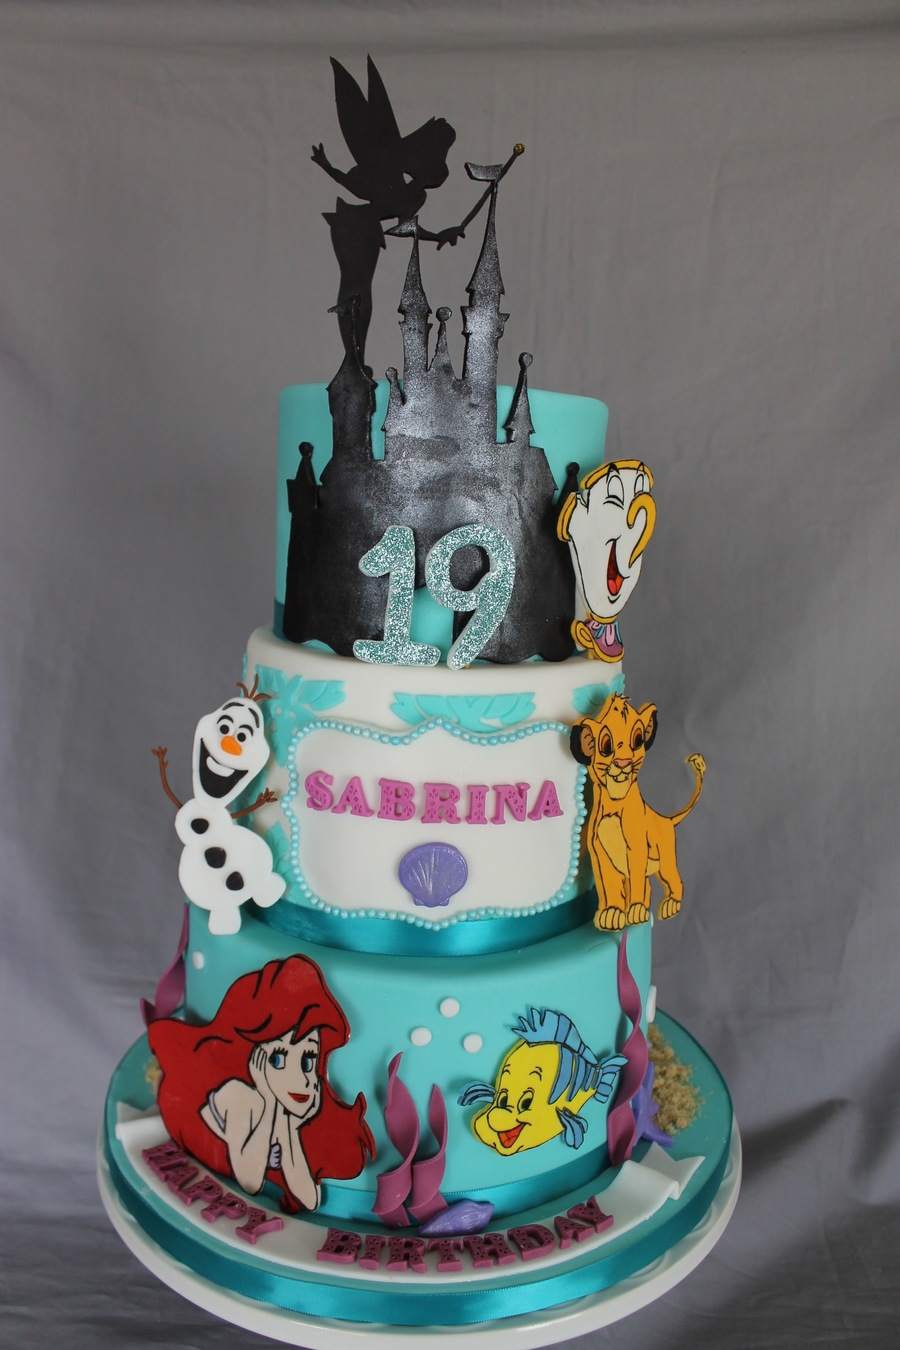 Disney Cake Decorating Ideas : Disney Themed Birthday Cake - CakeCentral.com